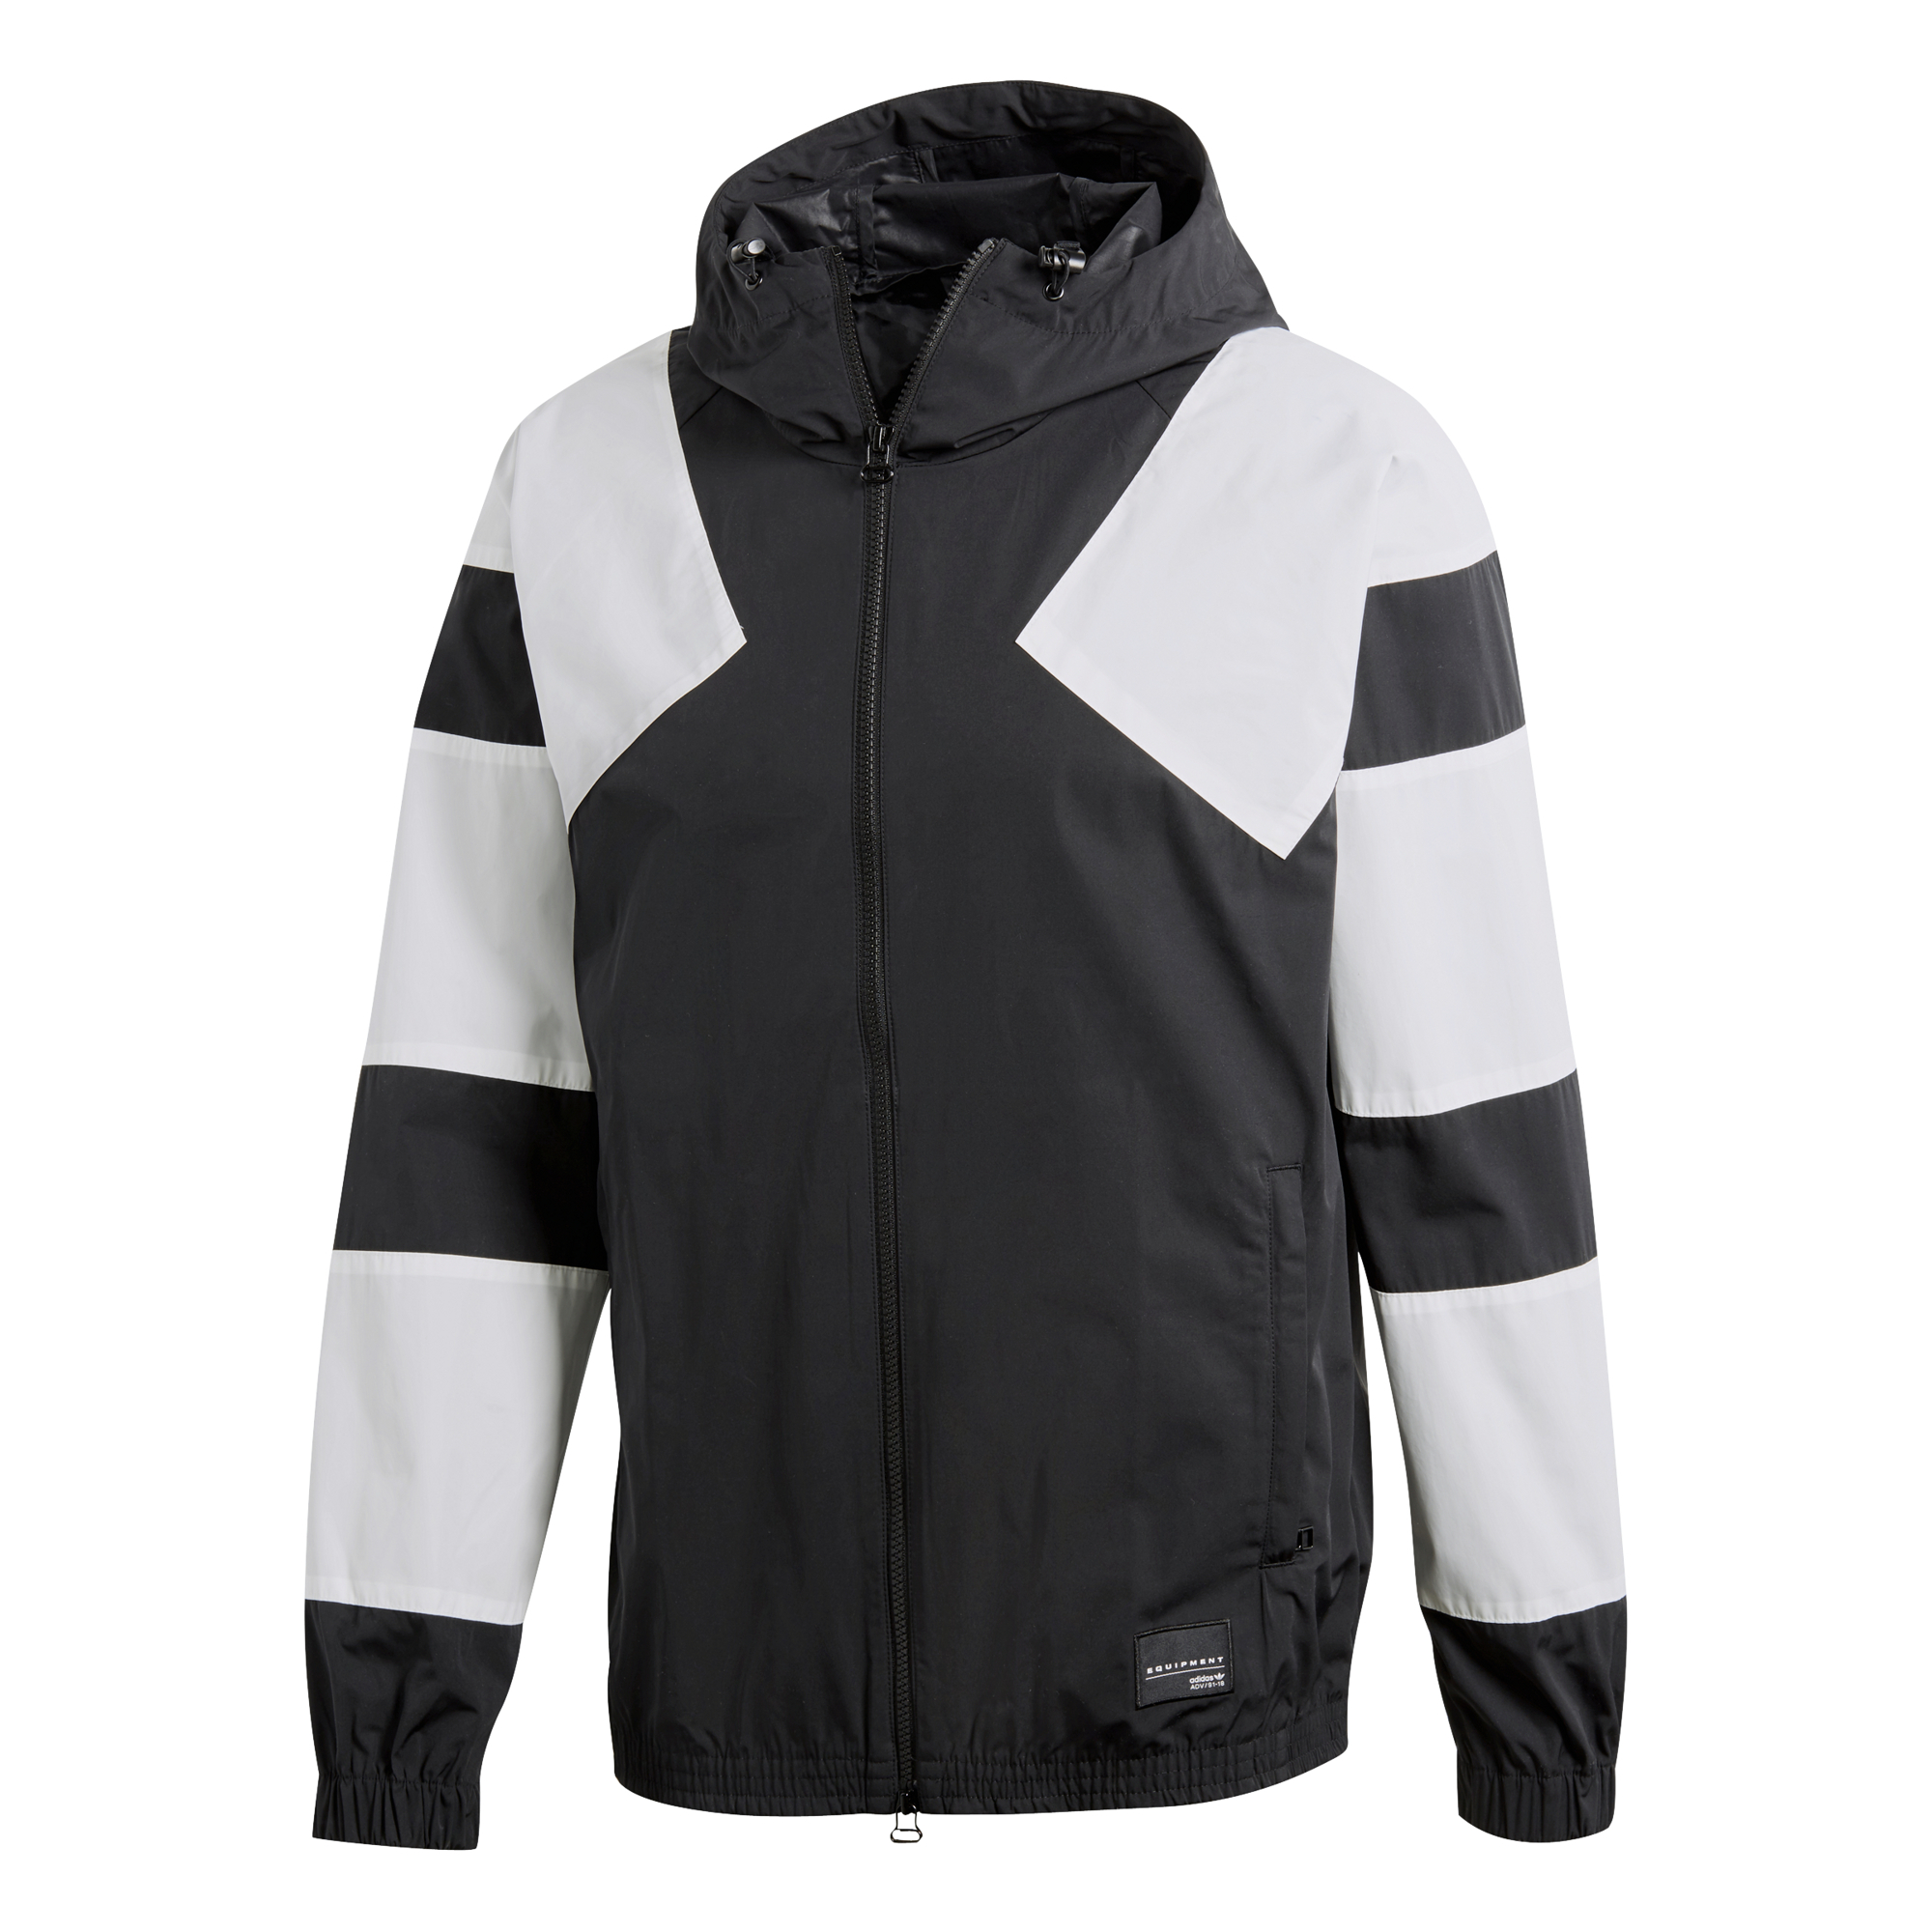 check out f446c a36c4 Adidas Originals EQT Windbreaker